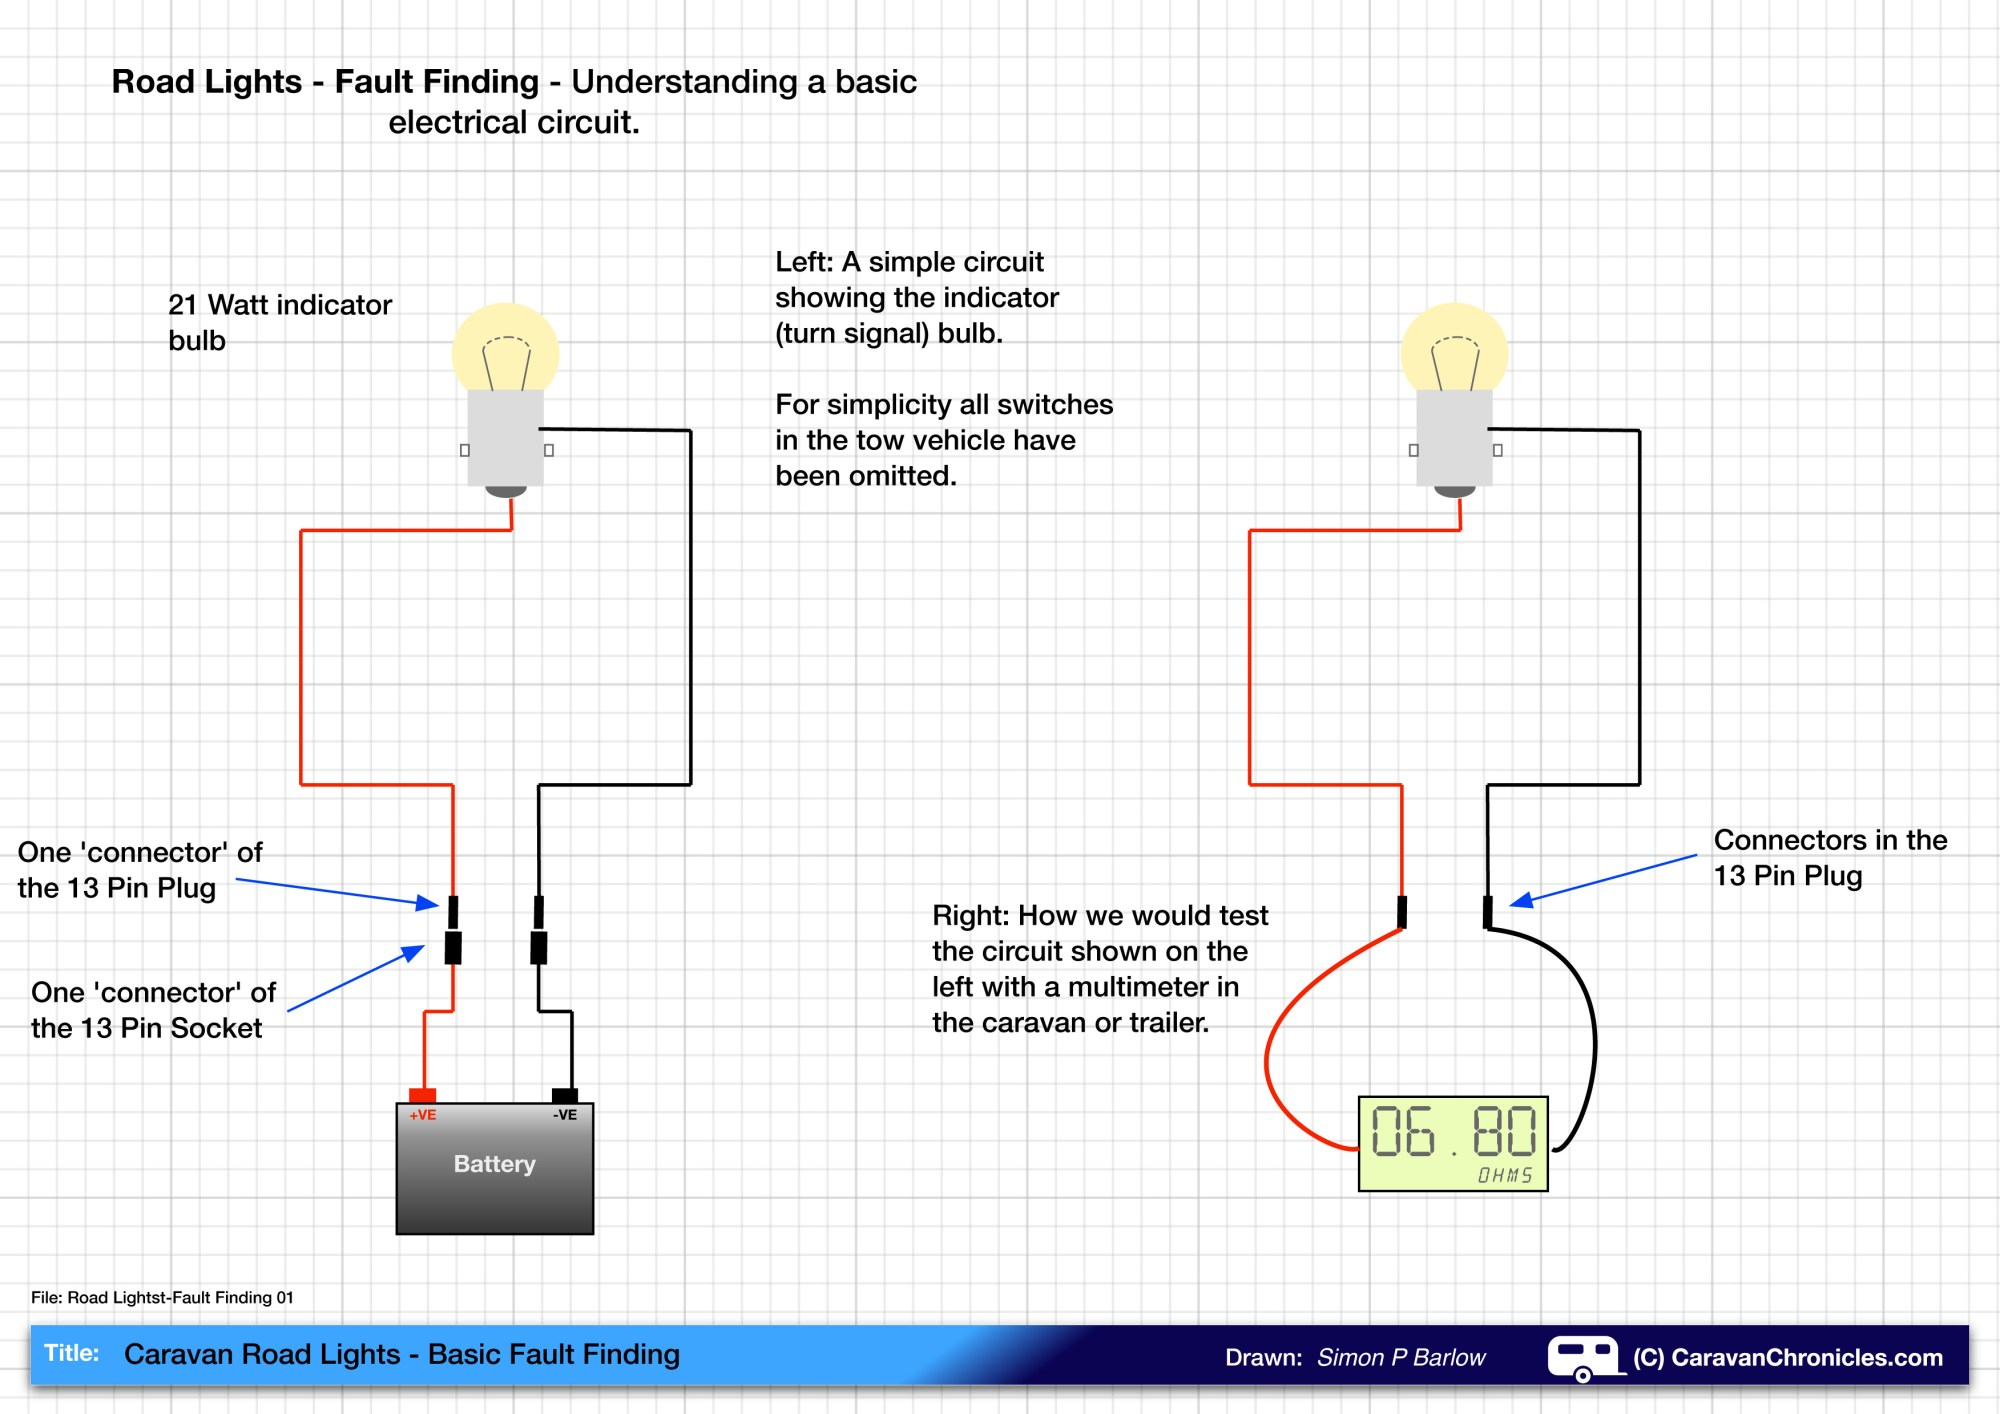 hight resolution of road light fault finding 01